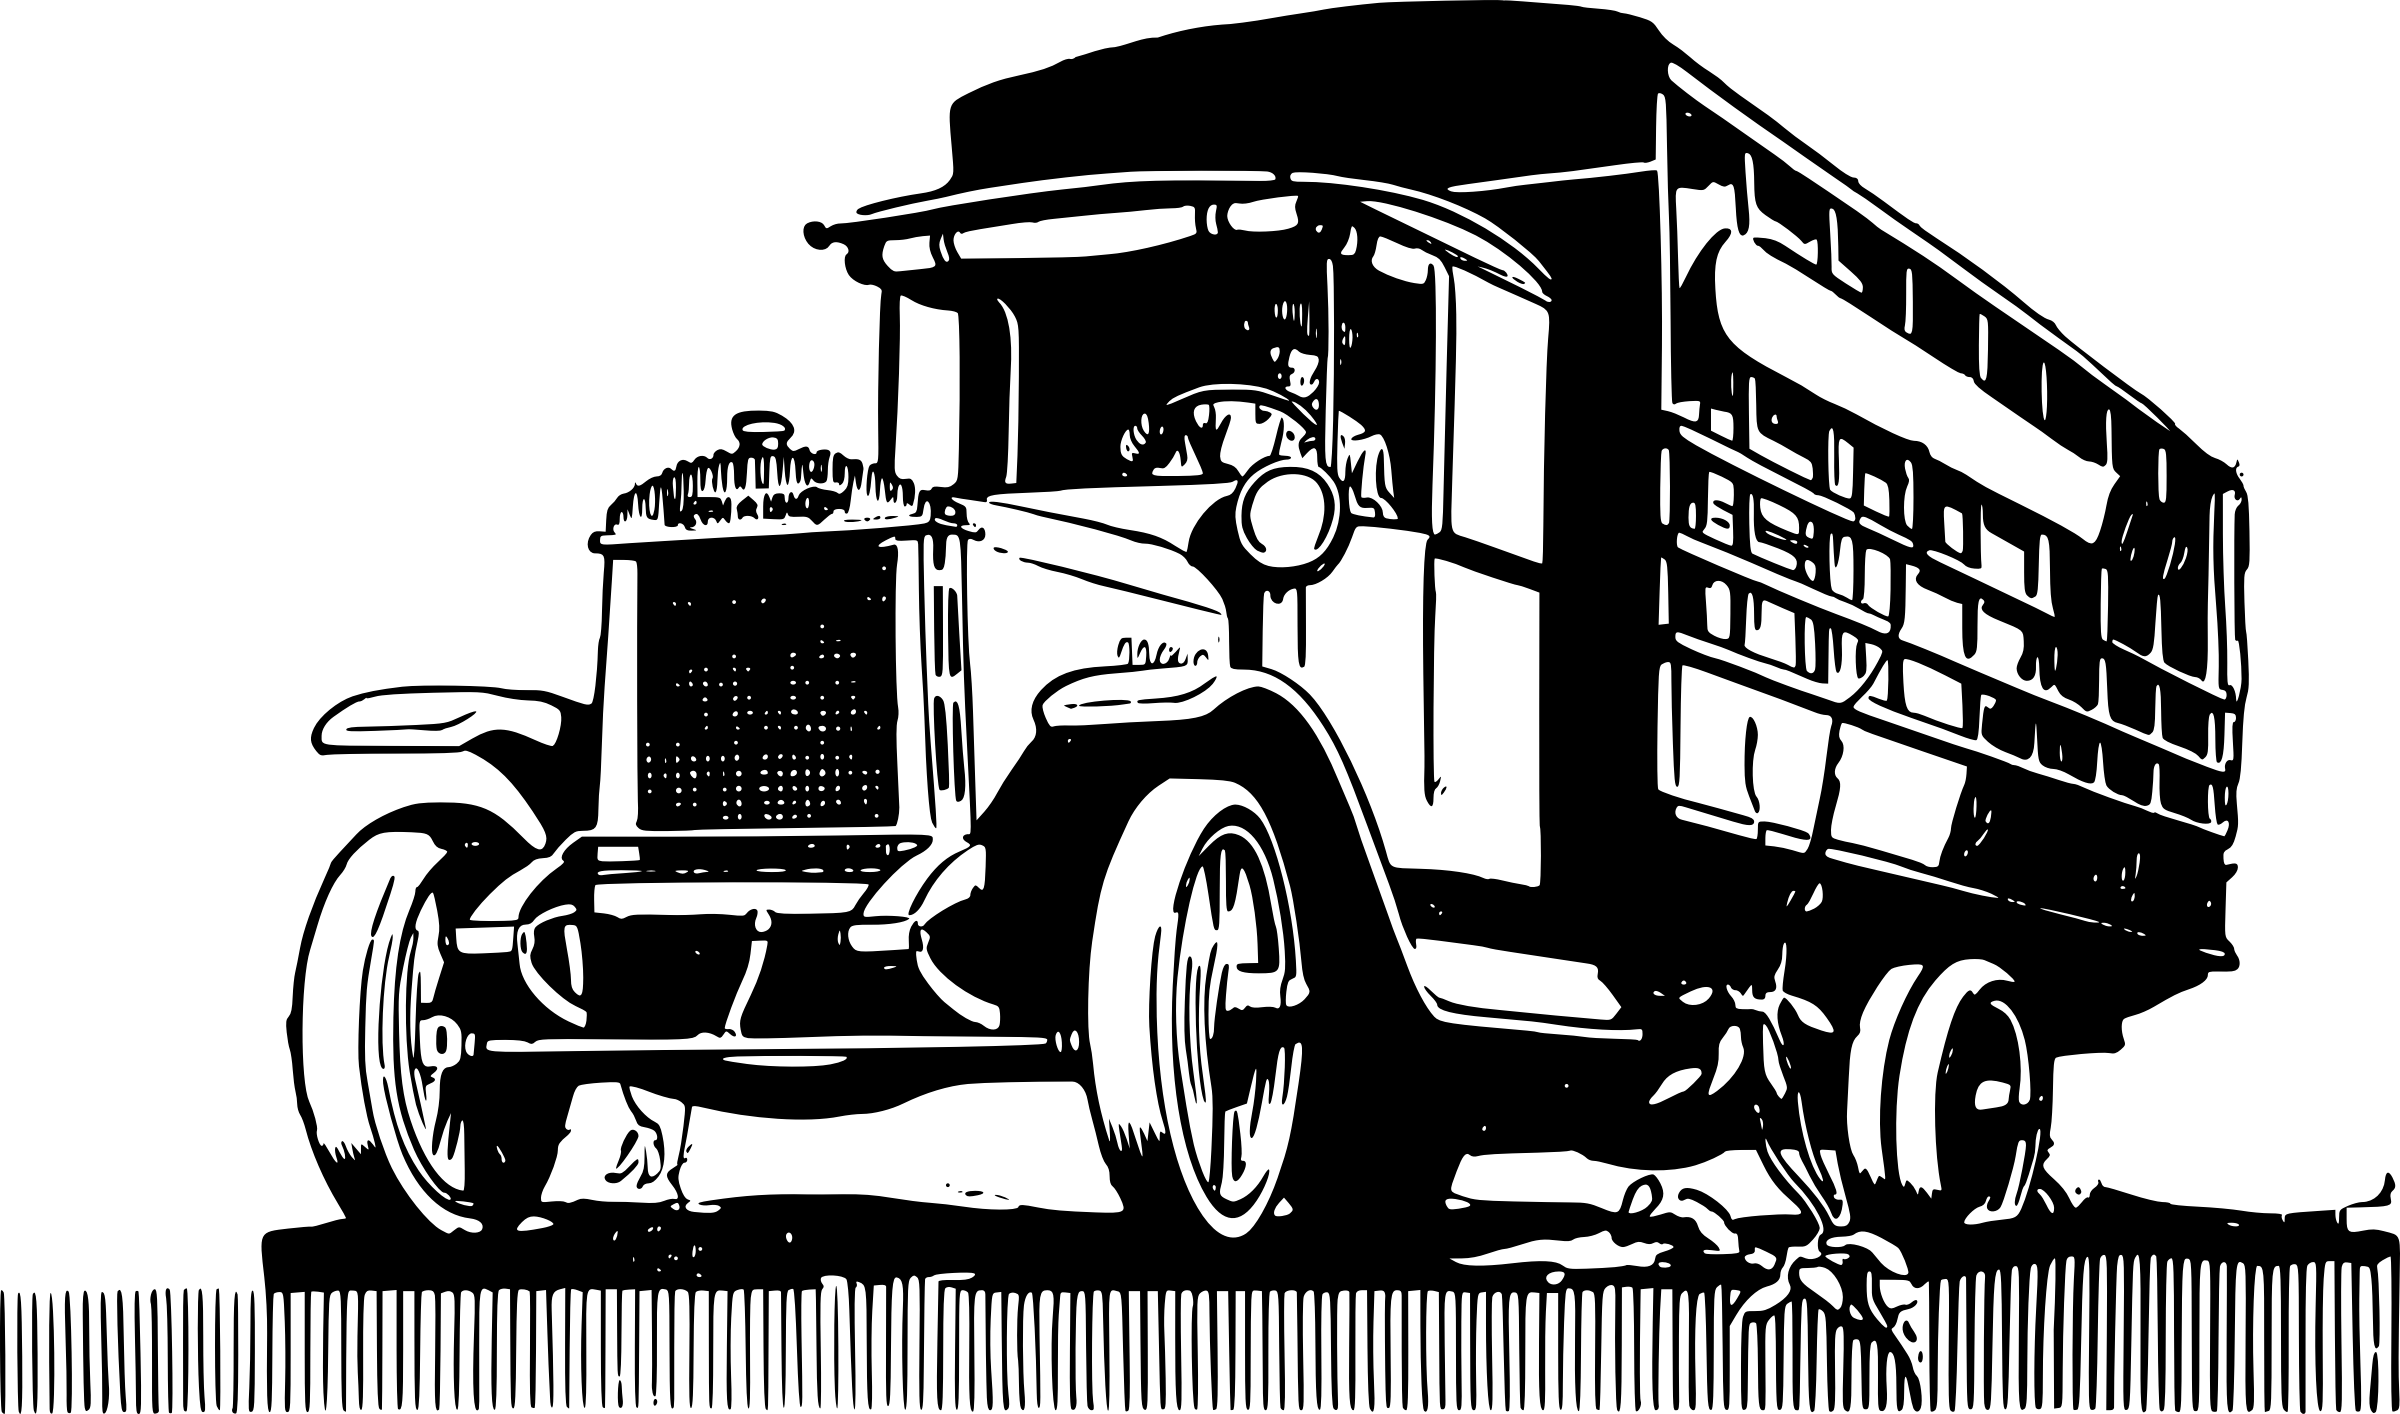 Old truck drawing at getdrawings free for personal use old old truck drawing 3 old truck